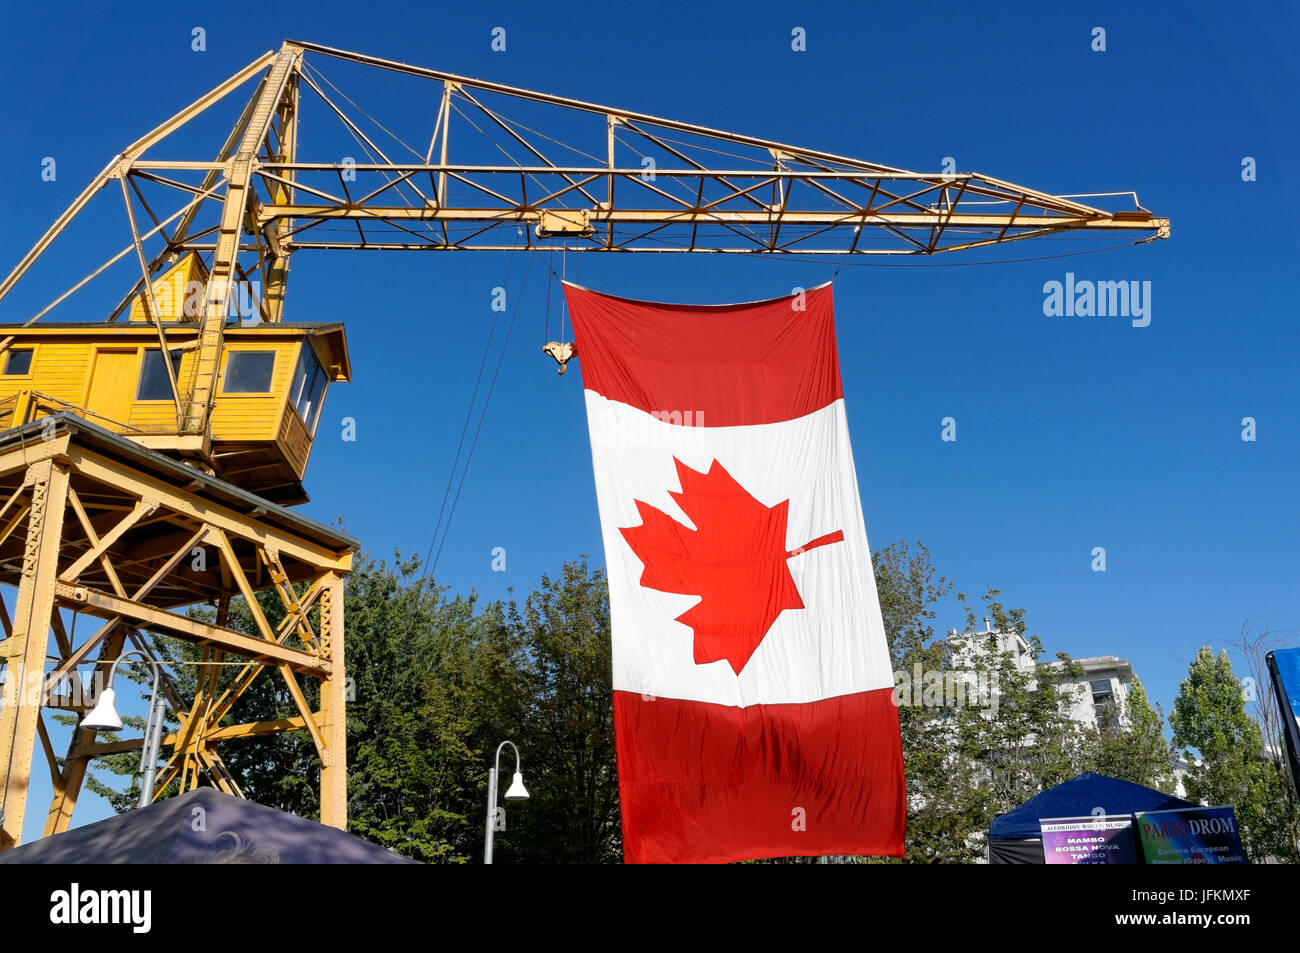 vancouver-canada-1st-july-2017-a-giant-c